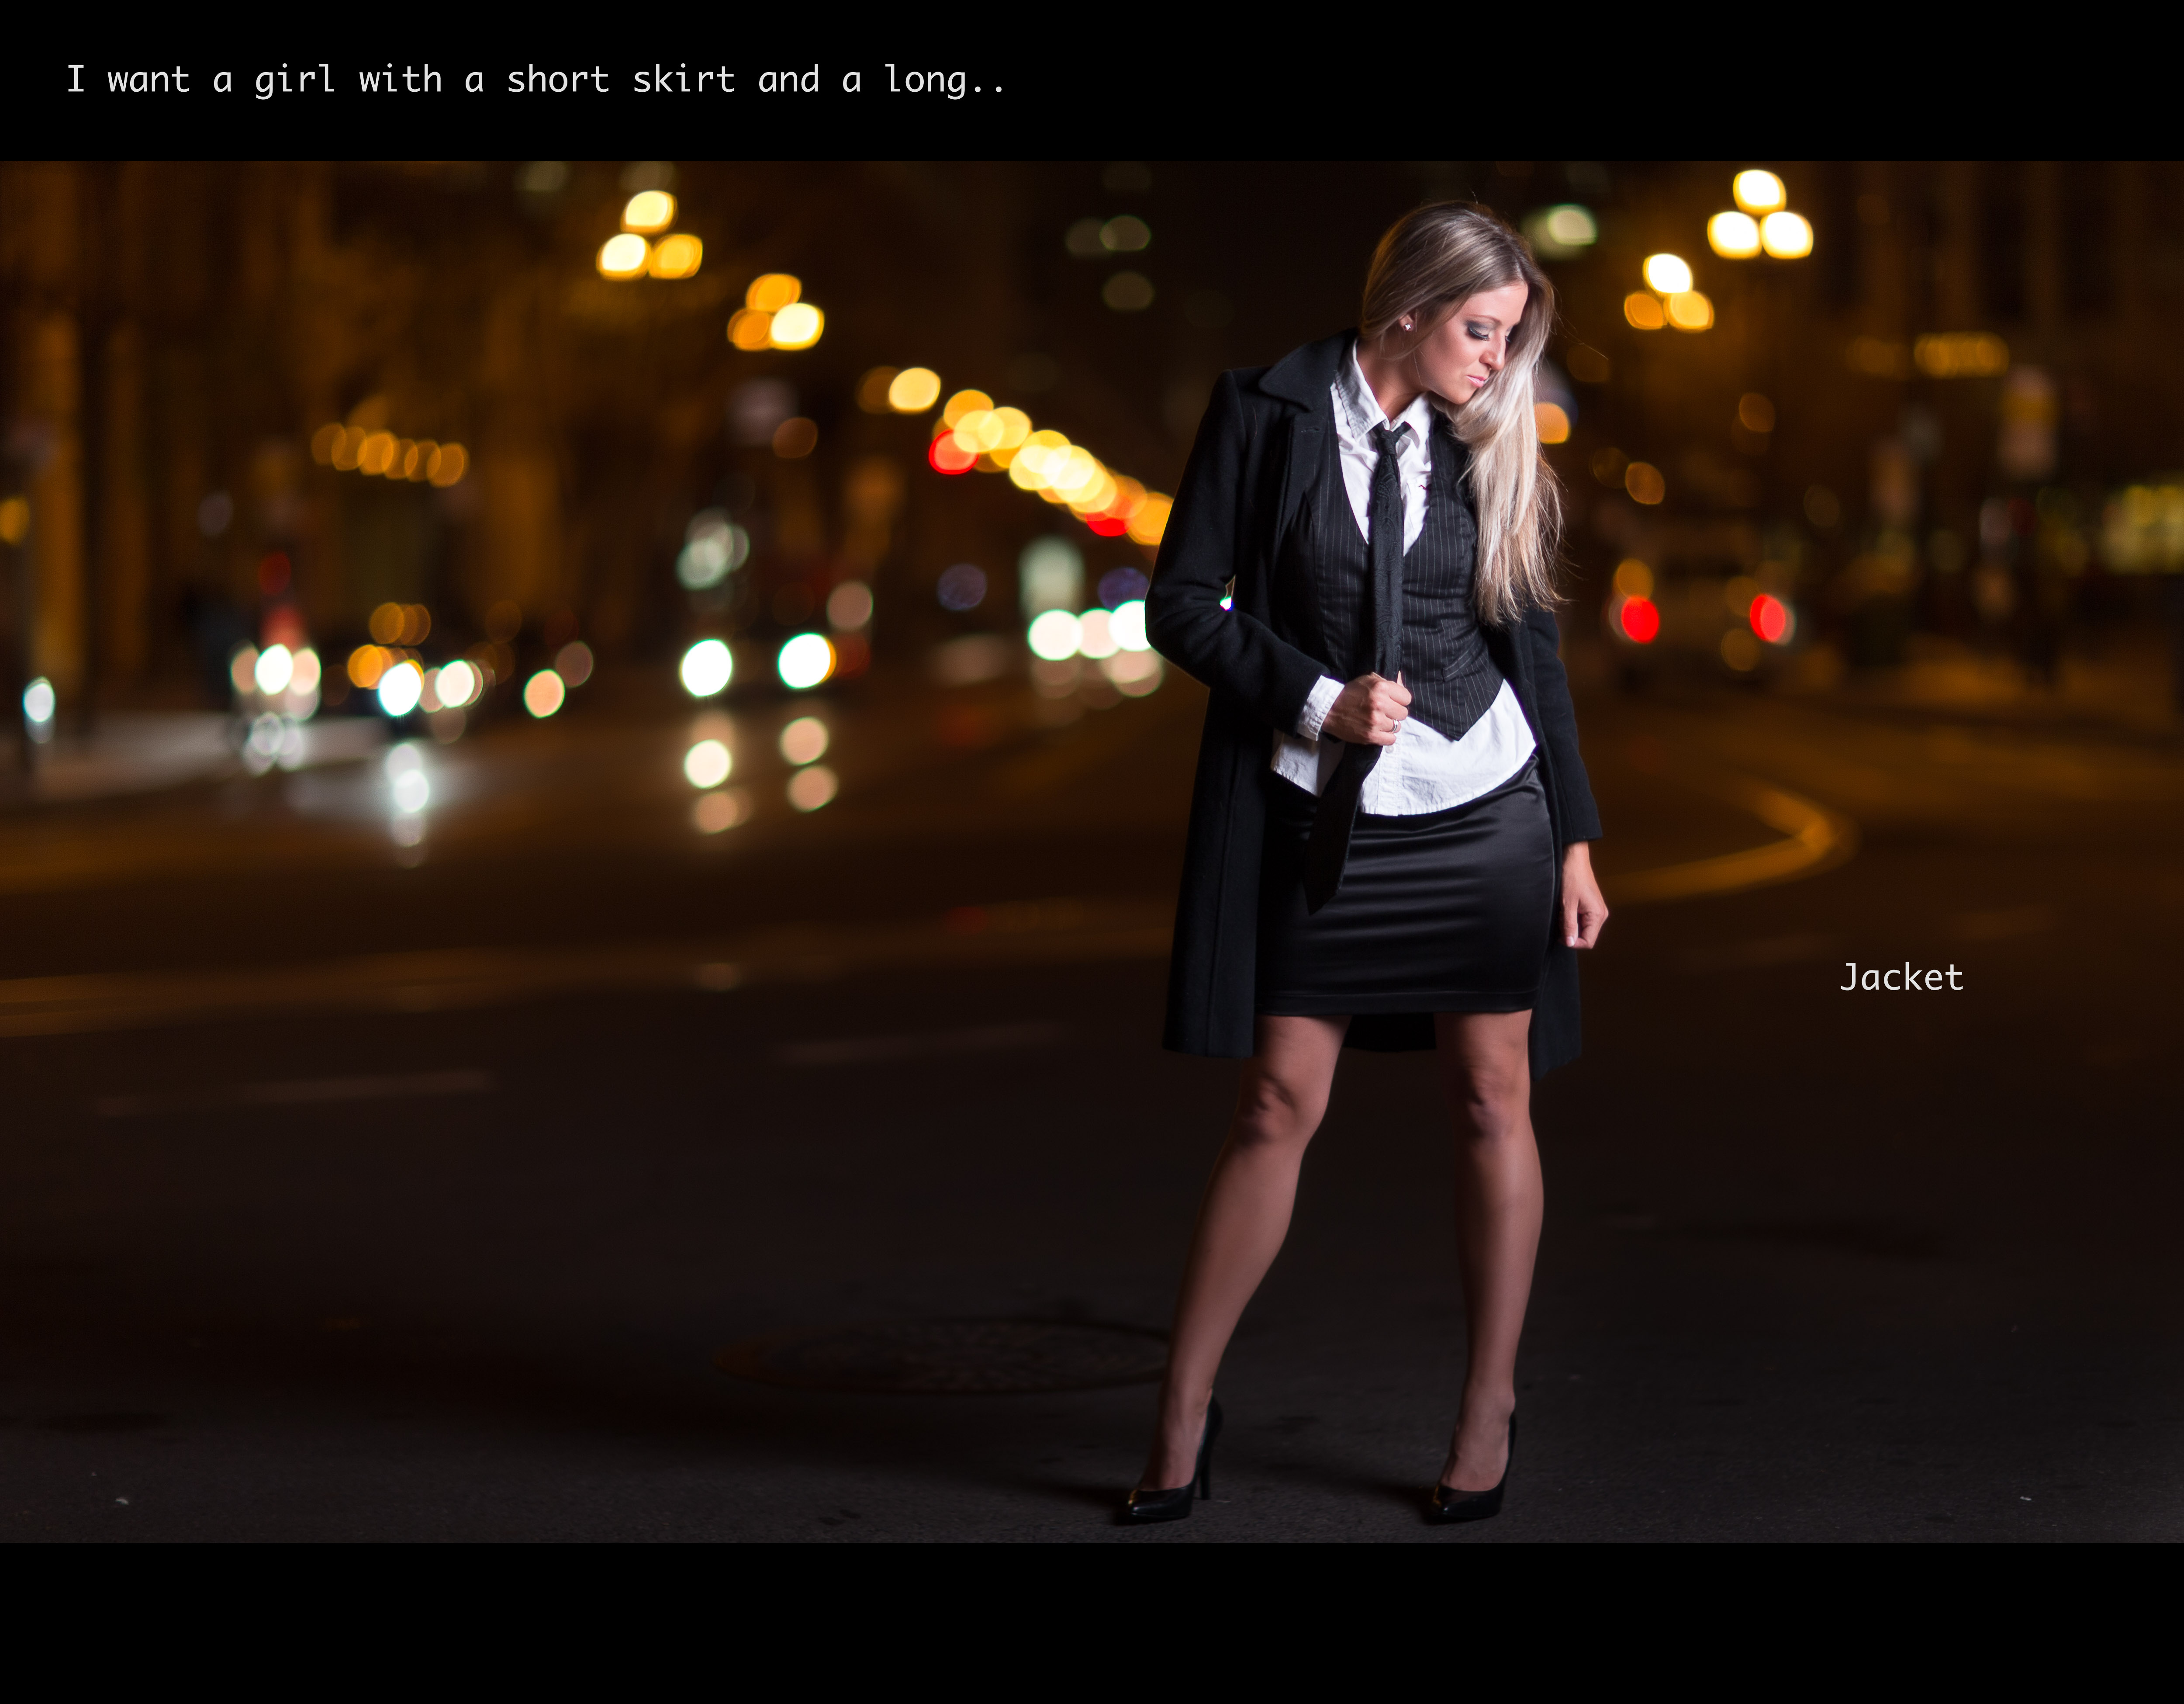 Picture of a woman standing on a street at night. She is wearing a vest and tie, a short skirt, and a long... jacket.